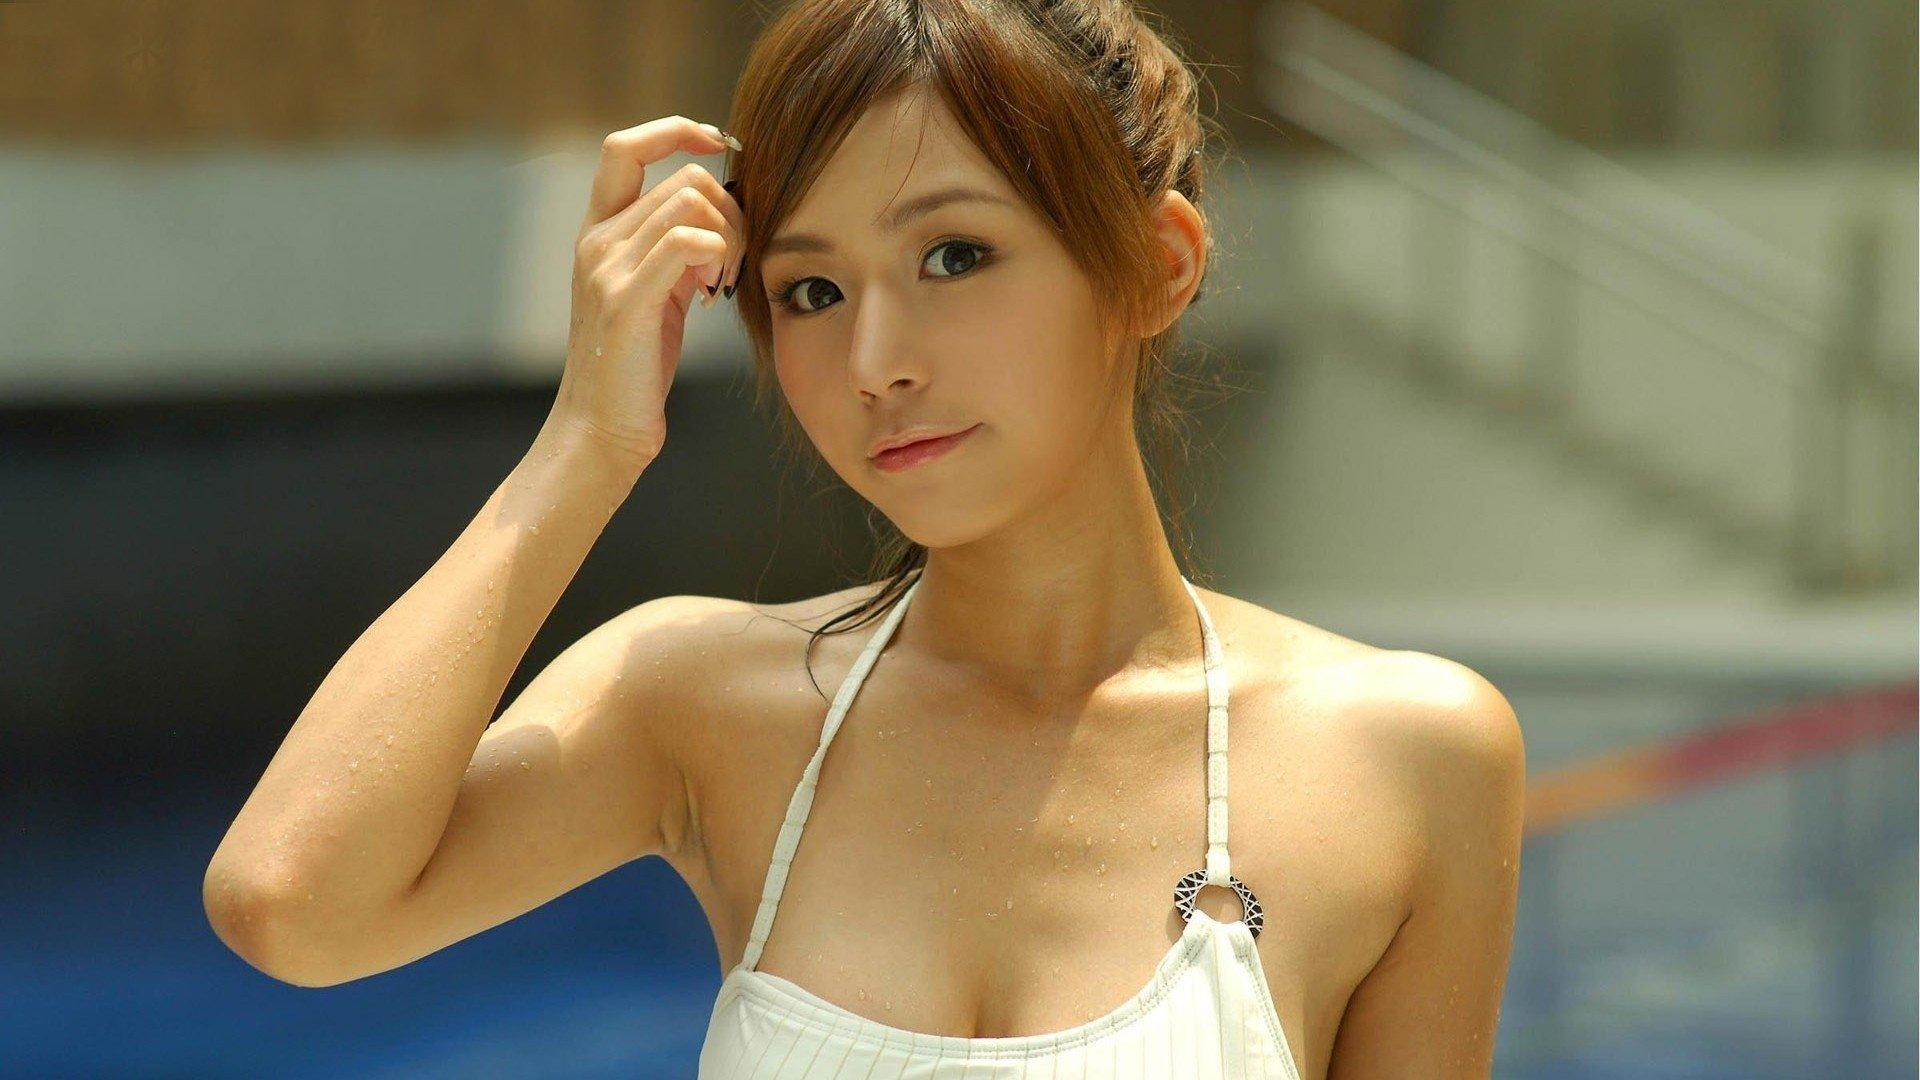 Wallpapers ID:312334